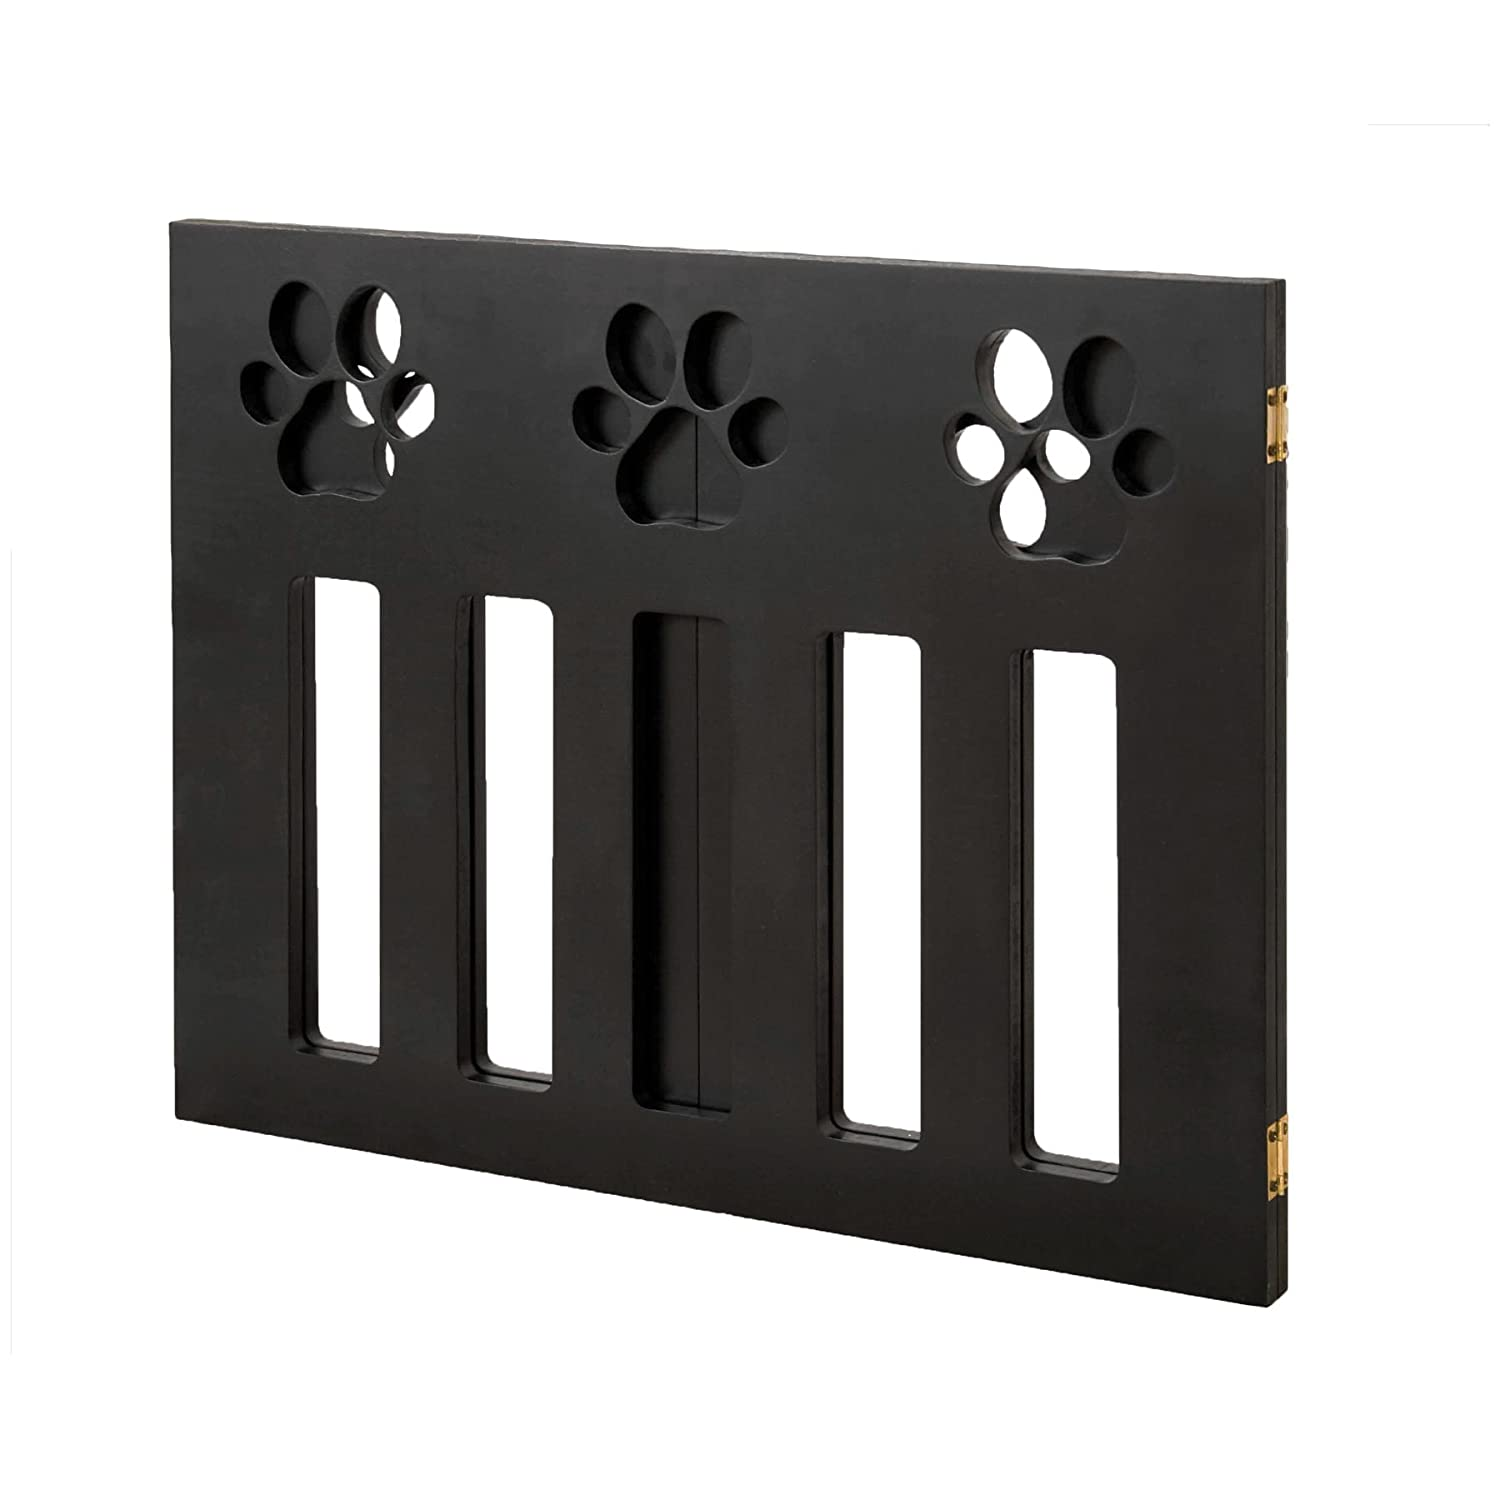 White Pet or Dog Gate Barrier 3 Panel 19 Tall 46 Wide Wood Modern Accent Decor